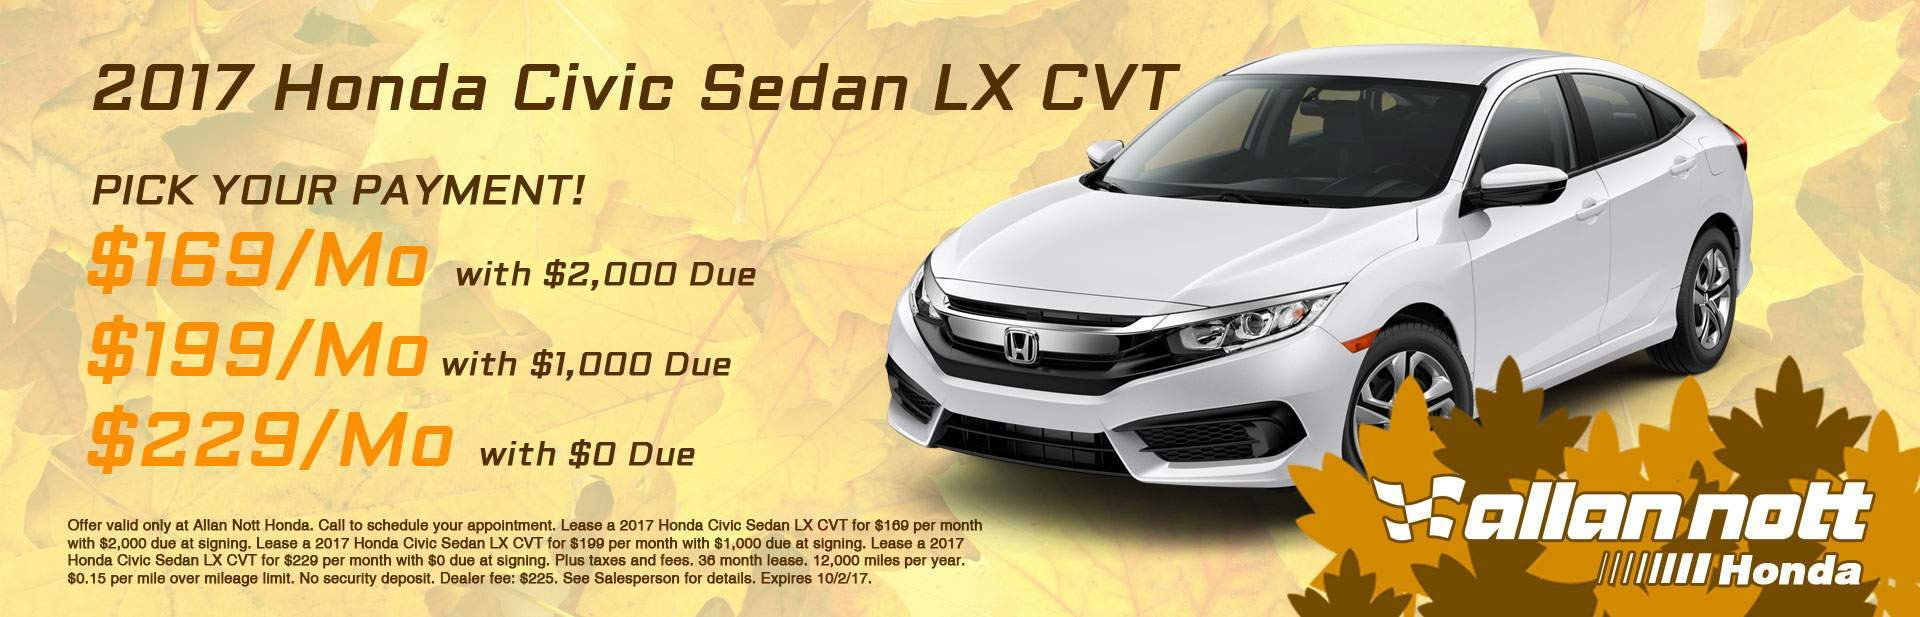 PICK YOUR PAYMENT! Lease a 2017 Honda Civic Sedan LX from Allan Nott Honda today!